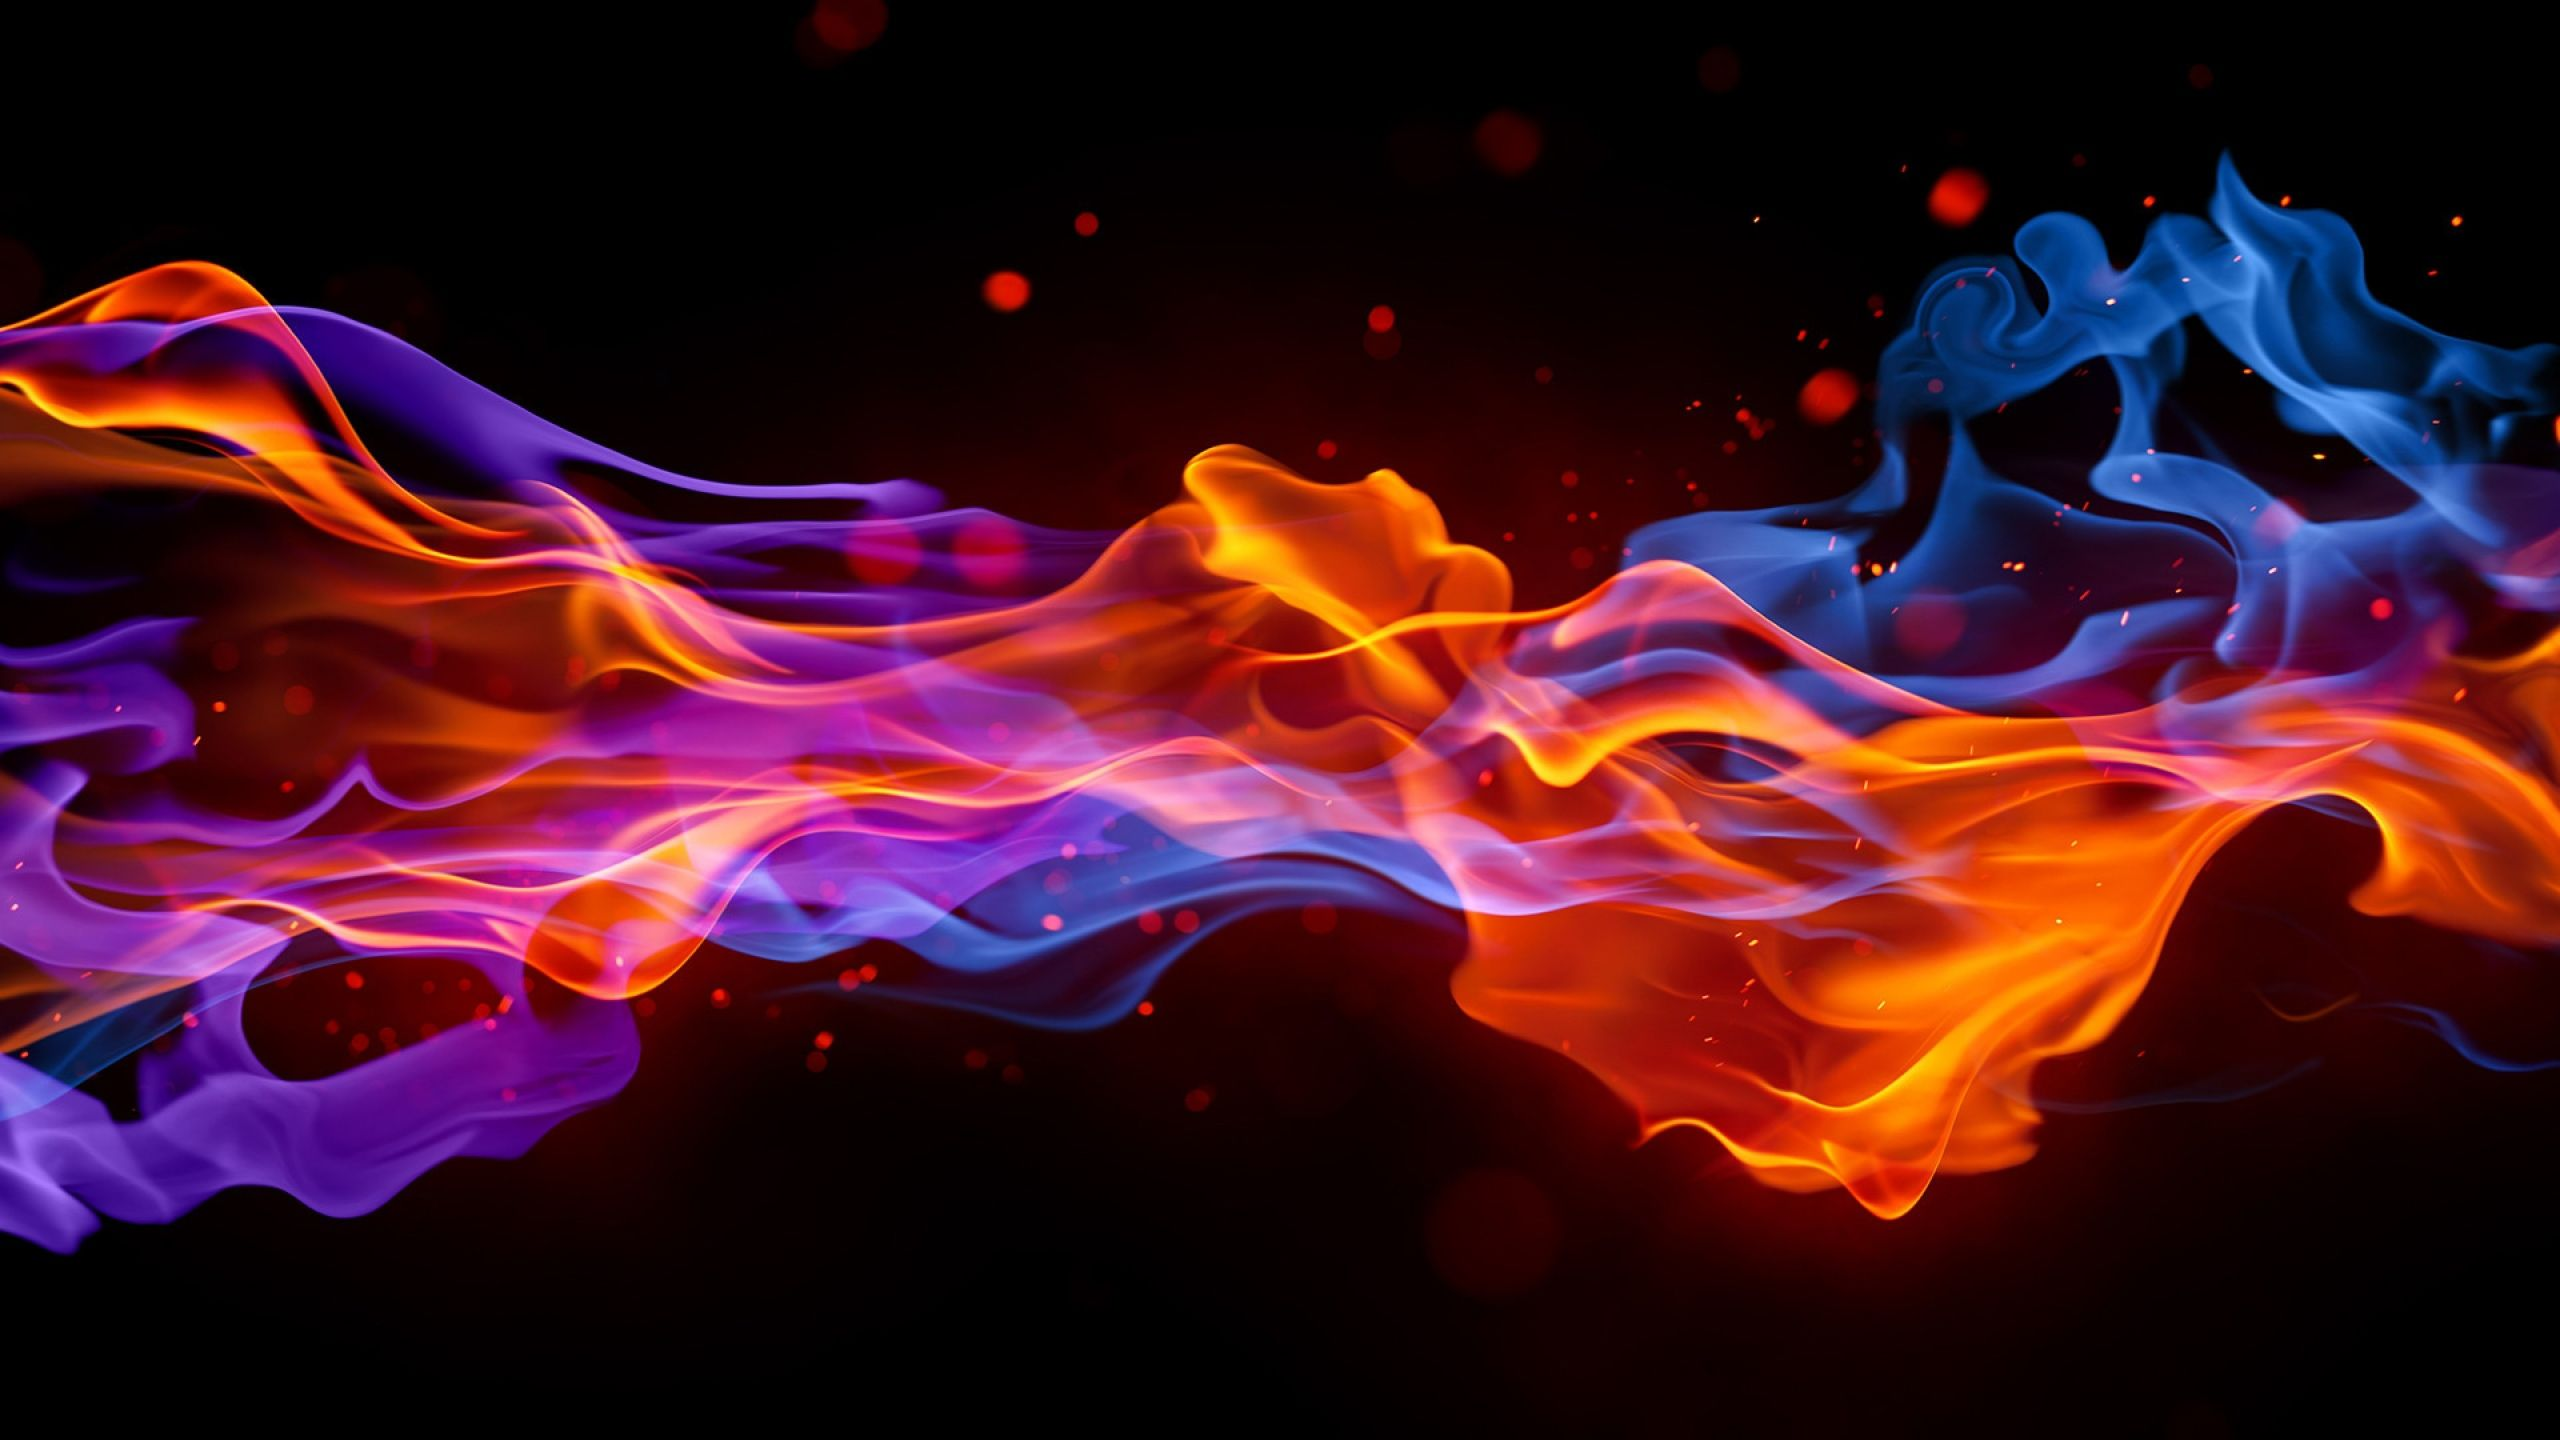 Download Wallpaper 2560x1440 Smoke, Fire, Bright, Colorful